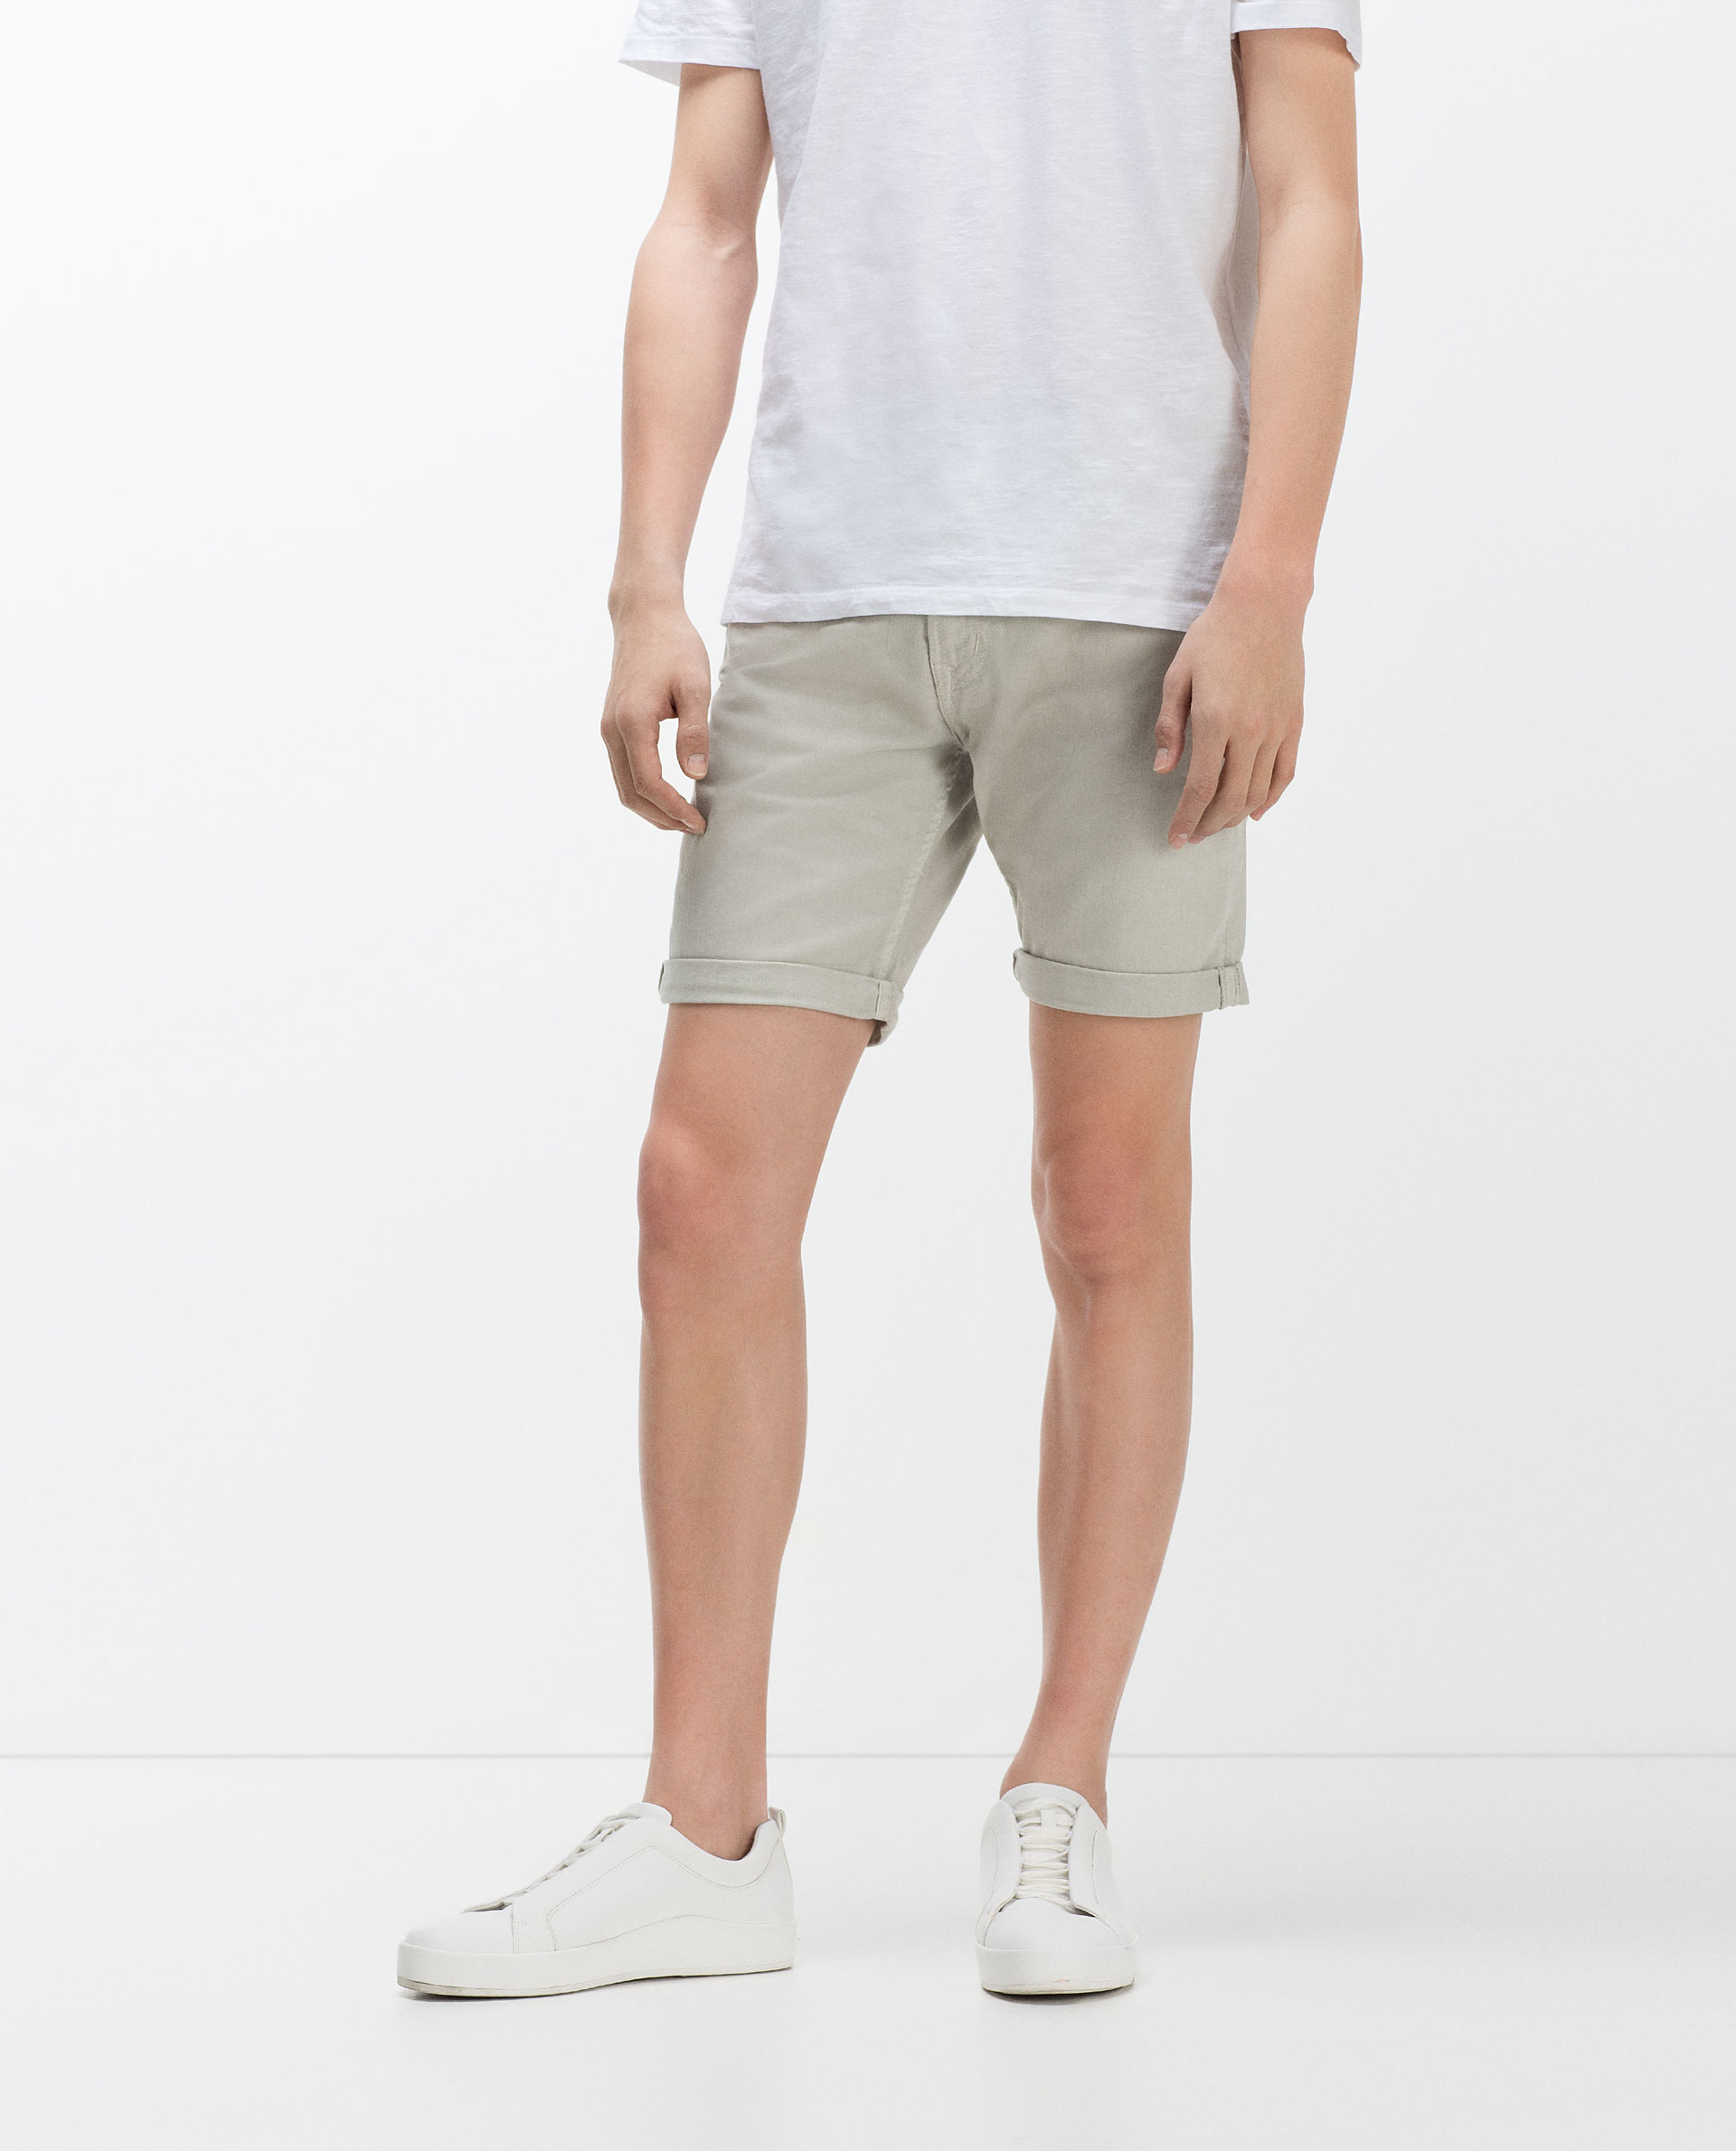 Get the best deals on zara shorts and save up to 70% off at Poshmark now! Whatever you're shopping for, we've got it.